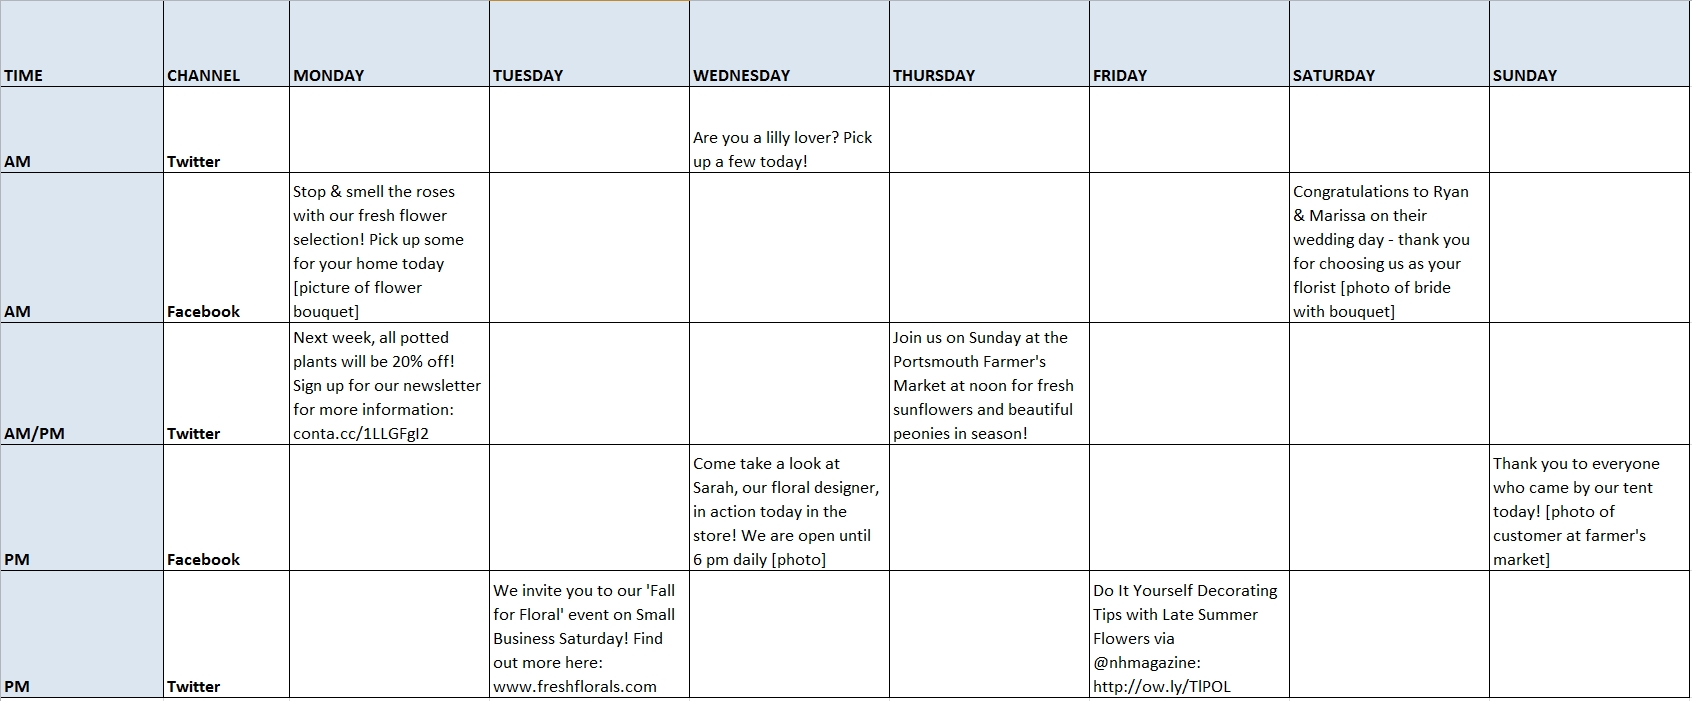 How To Create And Manage A Social Media Schedule In 3 Easy Steps throughout Social Media Content Weekly Schedule